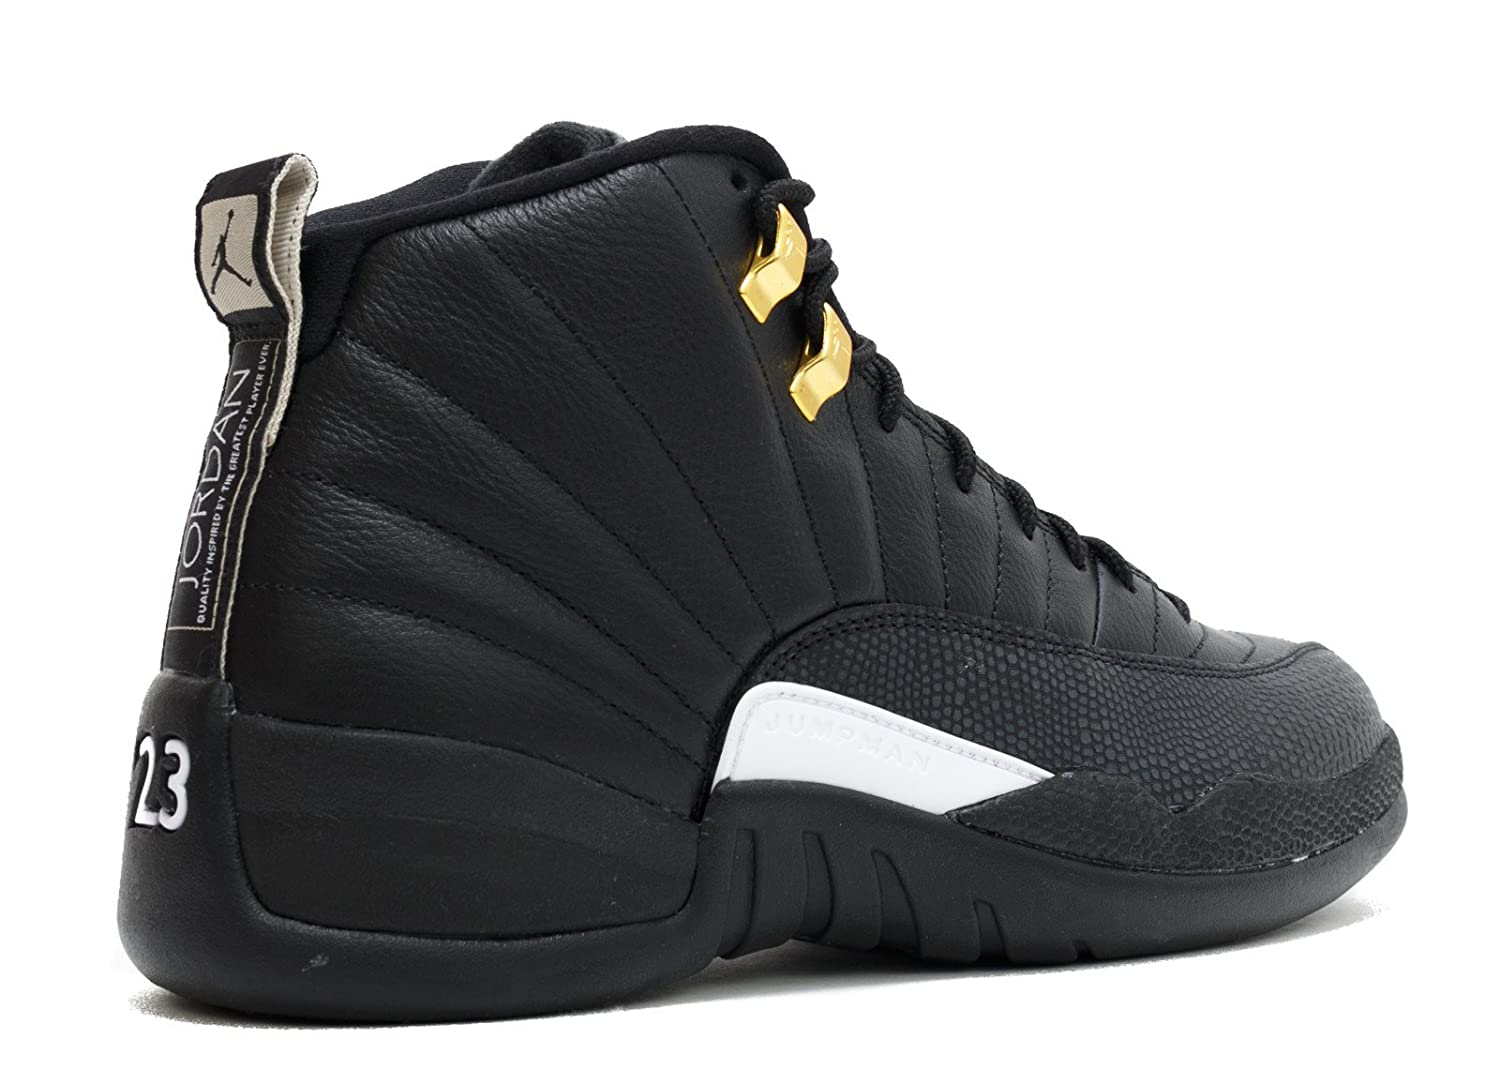 competitive price 08226 c6271 Jordan Men's Air 12 Retro, The Master-Black/White-Black-Metallic Gold (18)